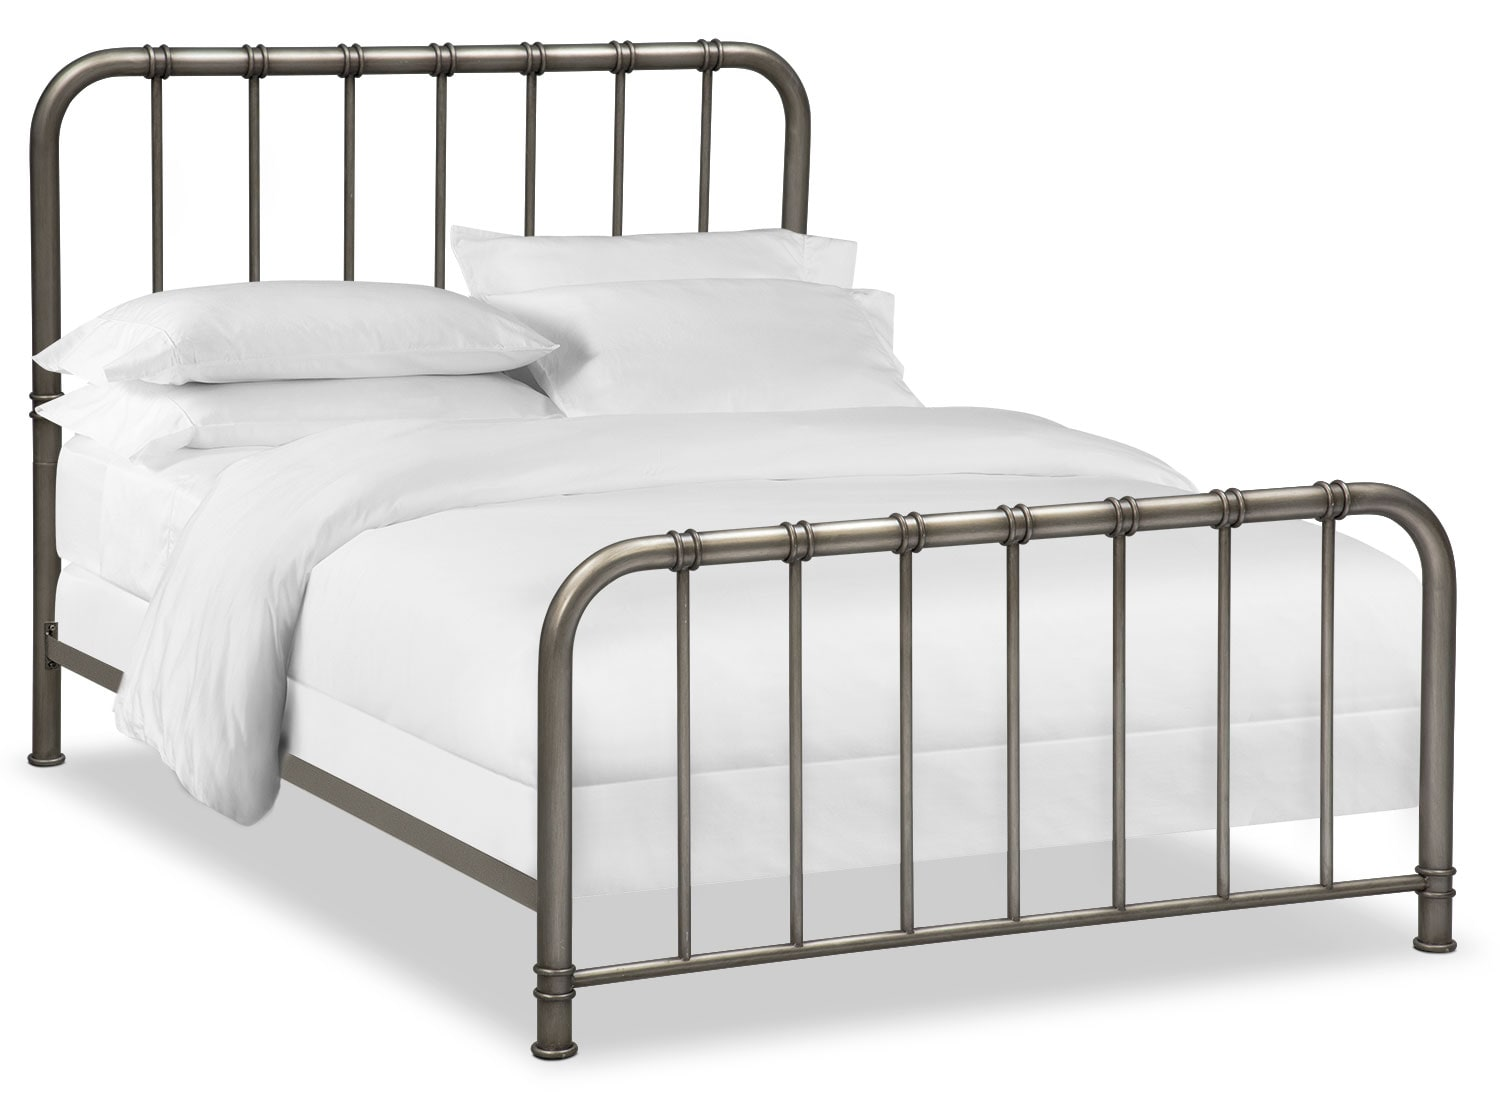 Pendleton King Bed - Gunmetal